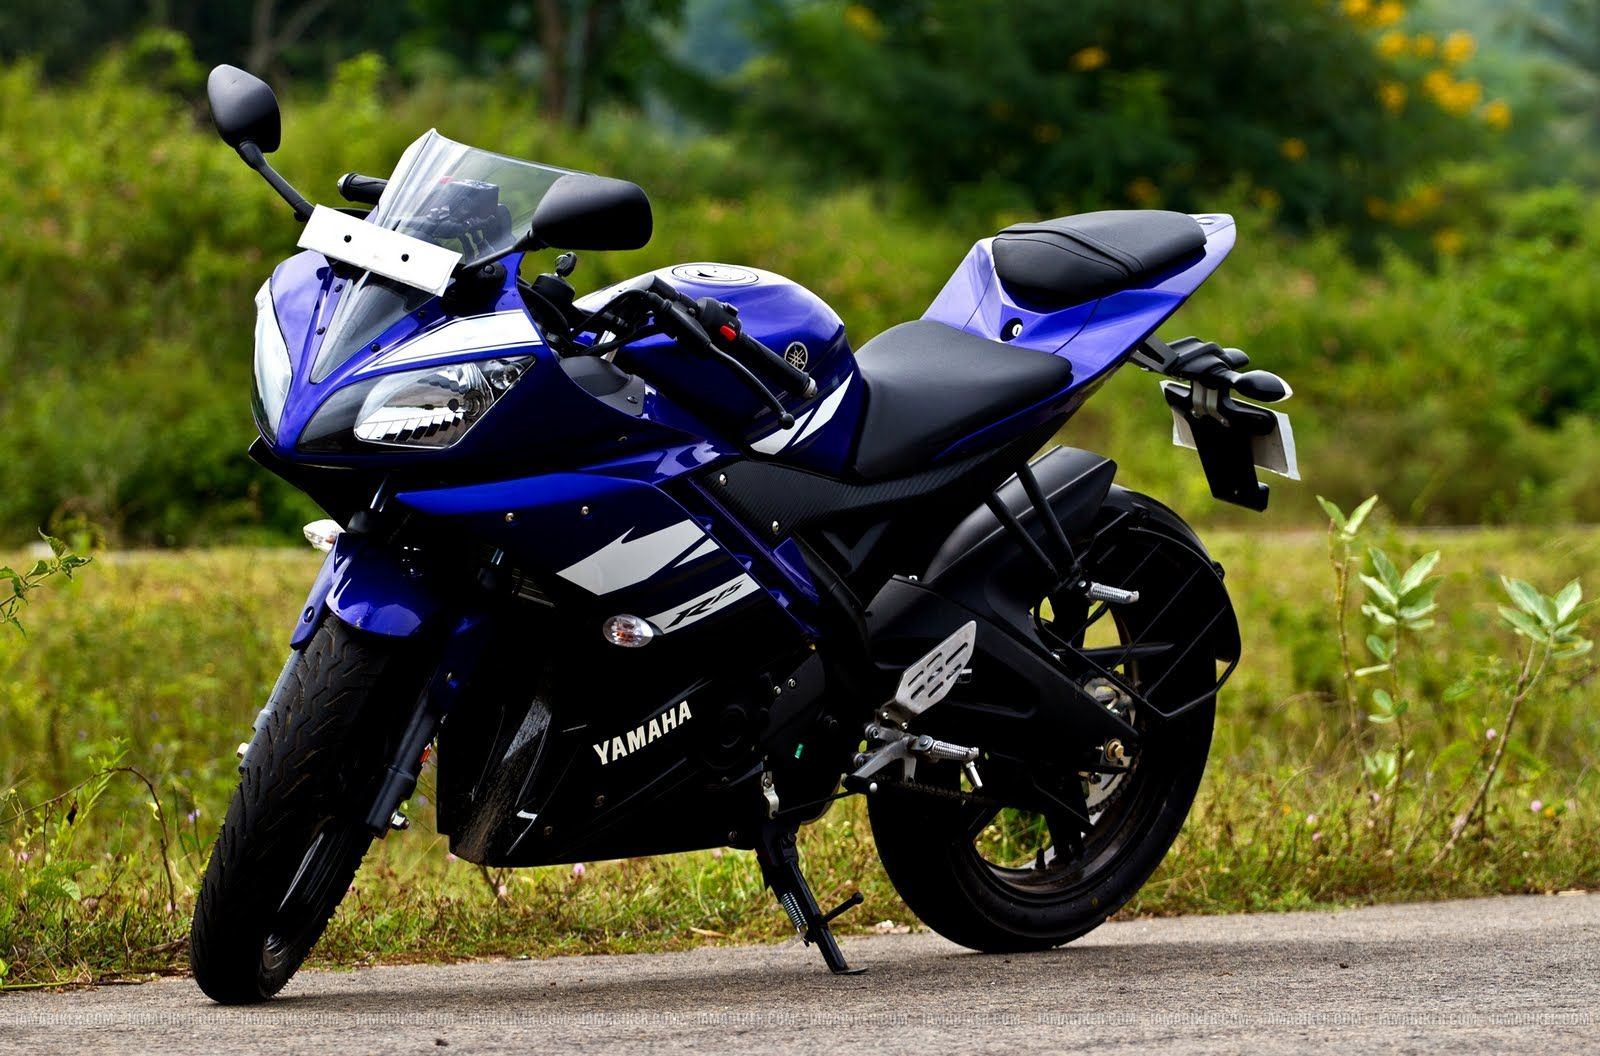 Pic New Posts Yamaha R15 V2 Hd Wallpapers With Images Yamaha